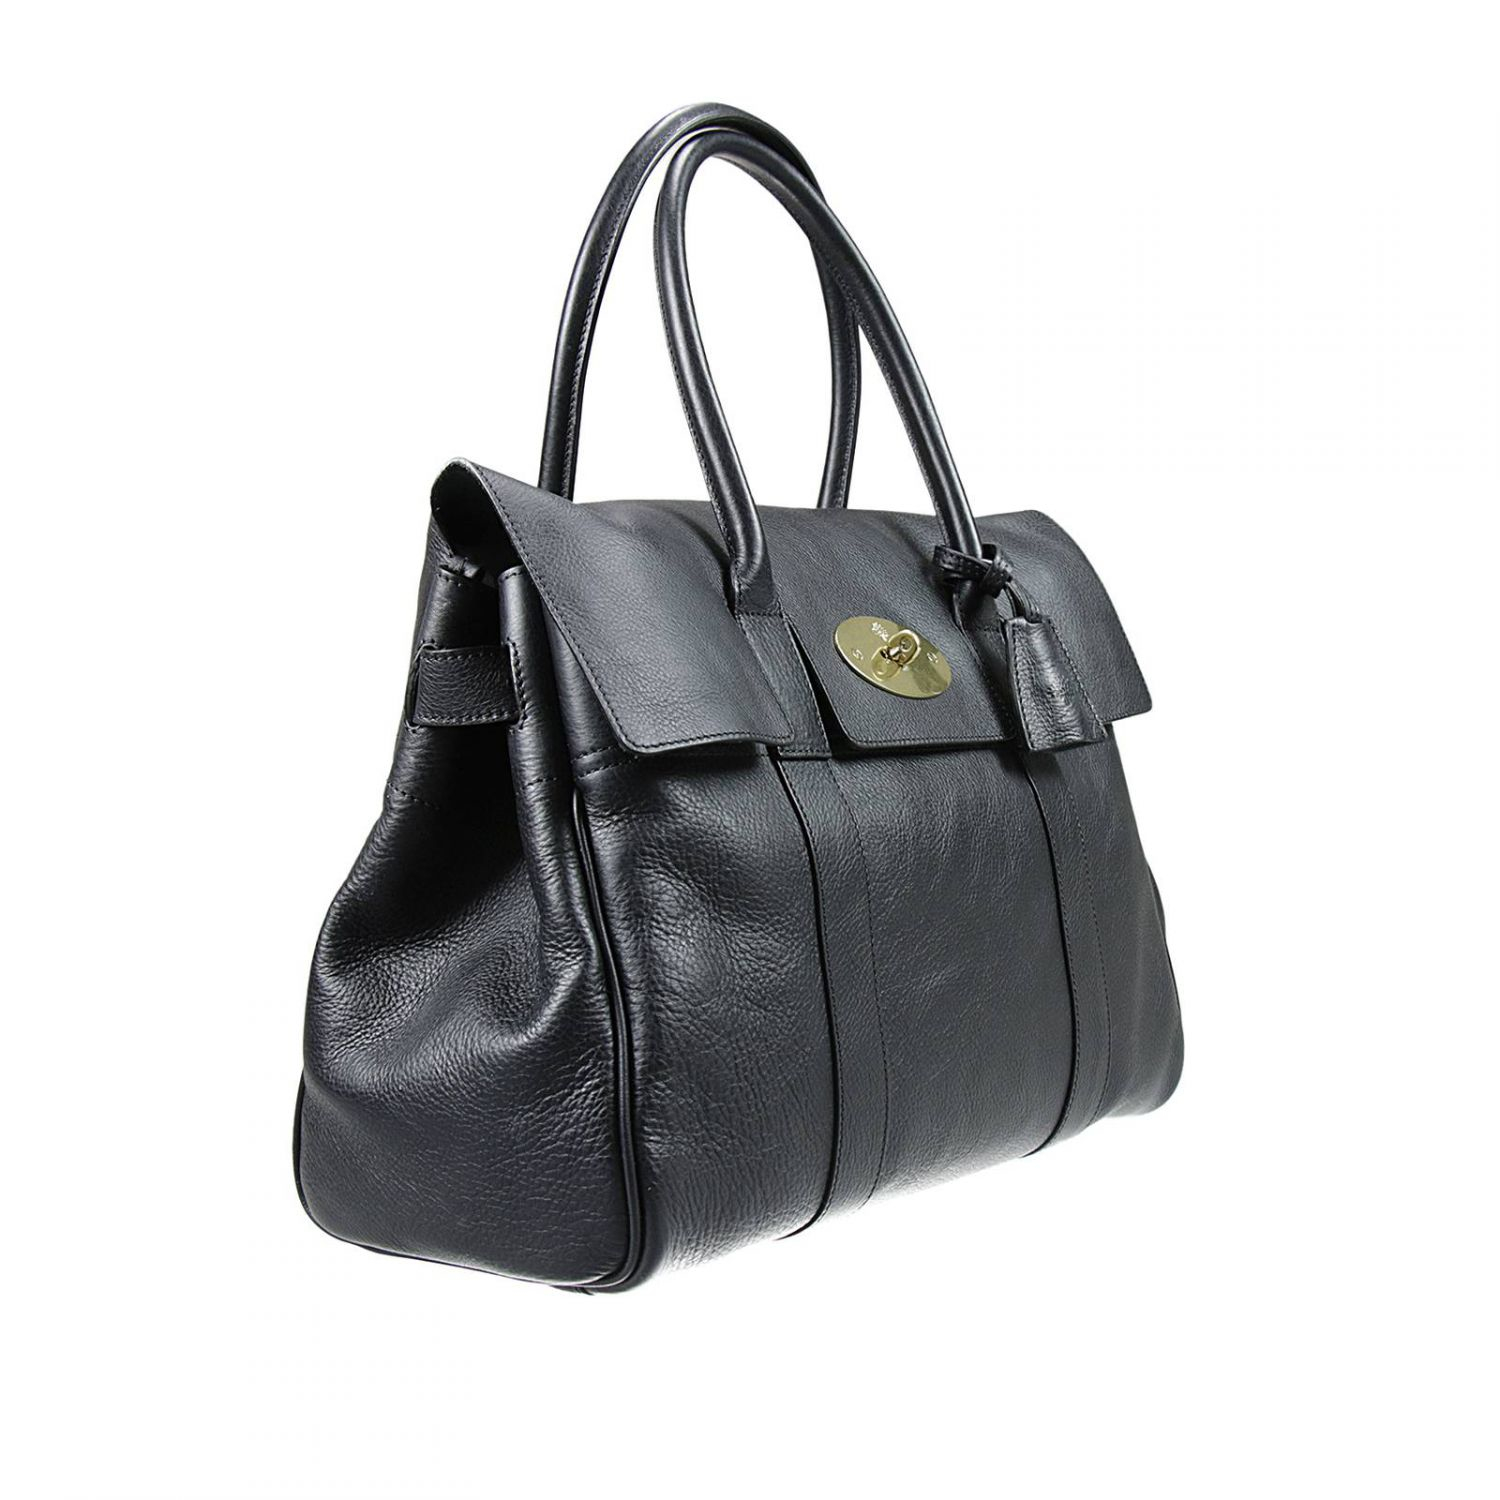 168c02f63713 ... best price gallery. previously sold at giglio womens mulberry bayswater  07ac2 14464